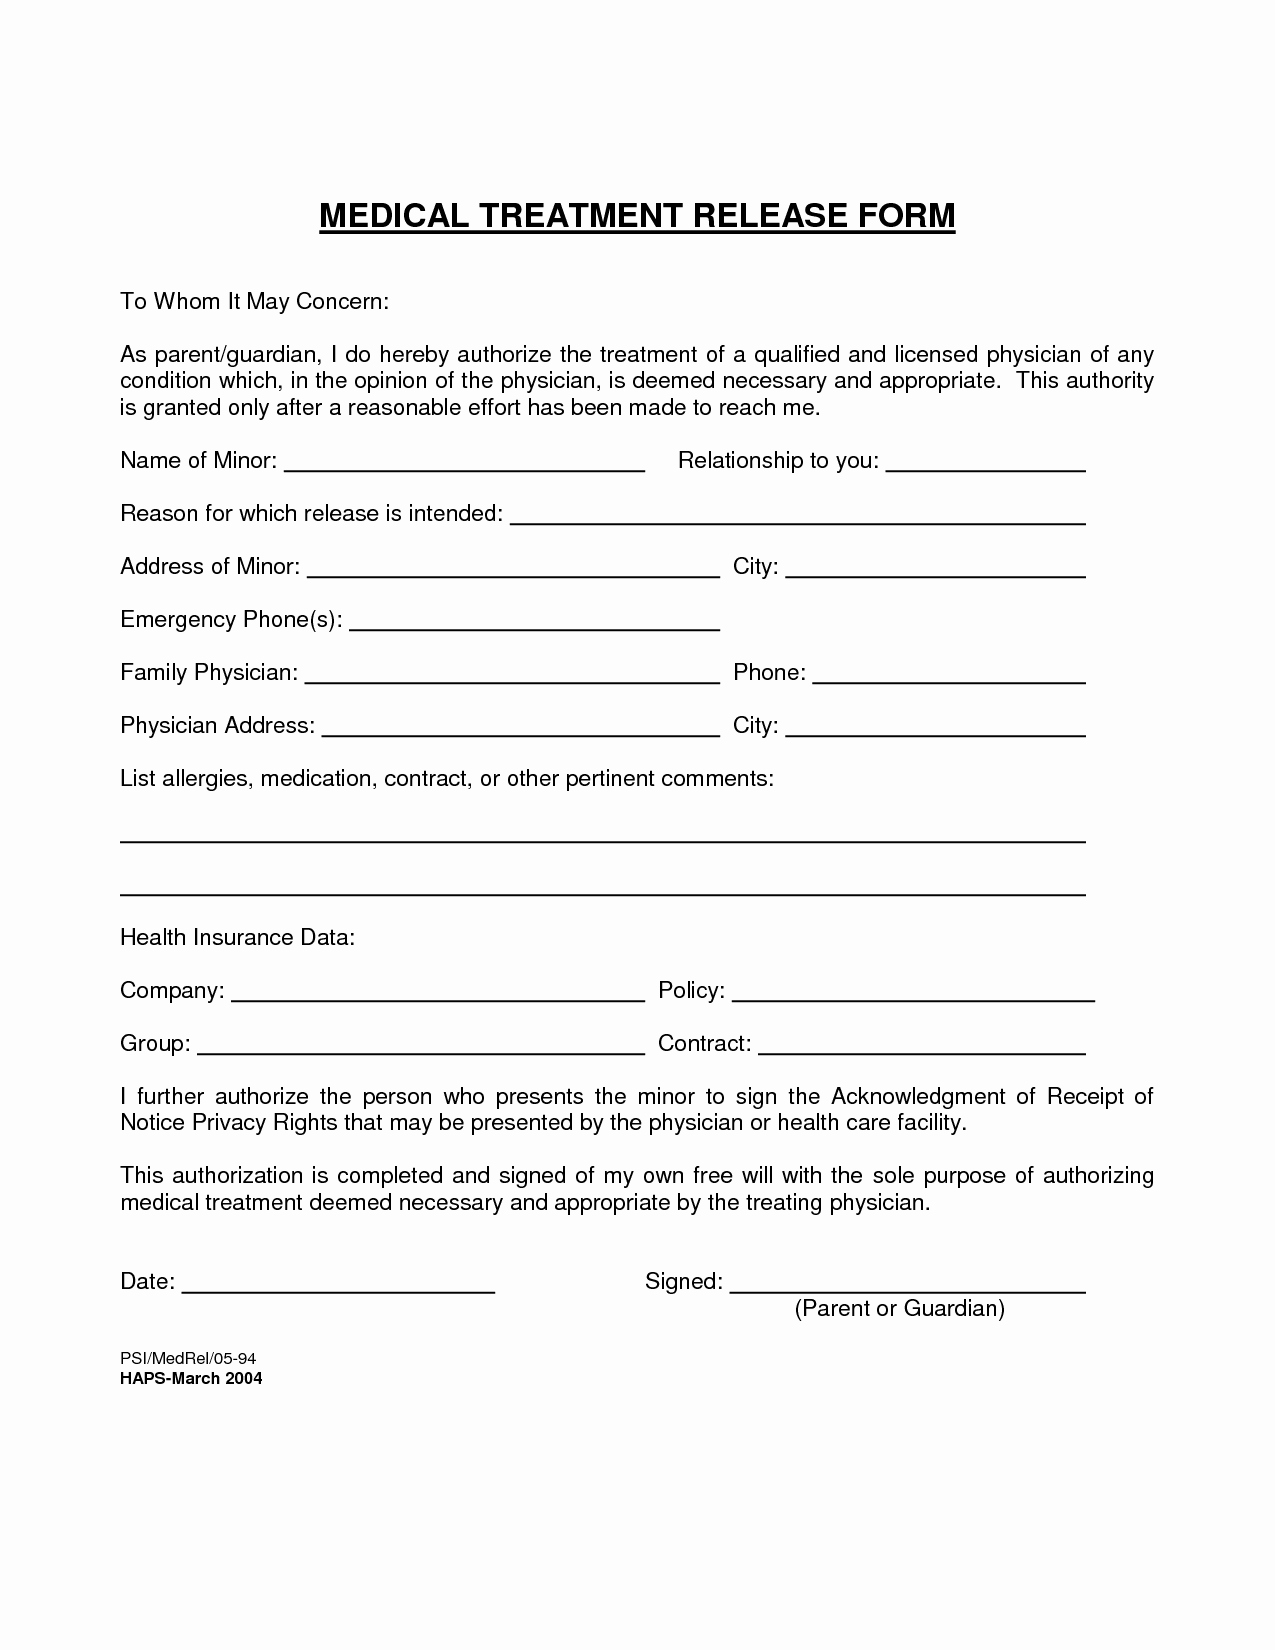 Emergency Room Release form Luxury Medical Treatment Release form Free Printable Documents